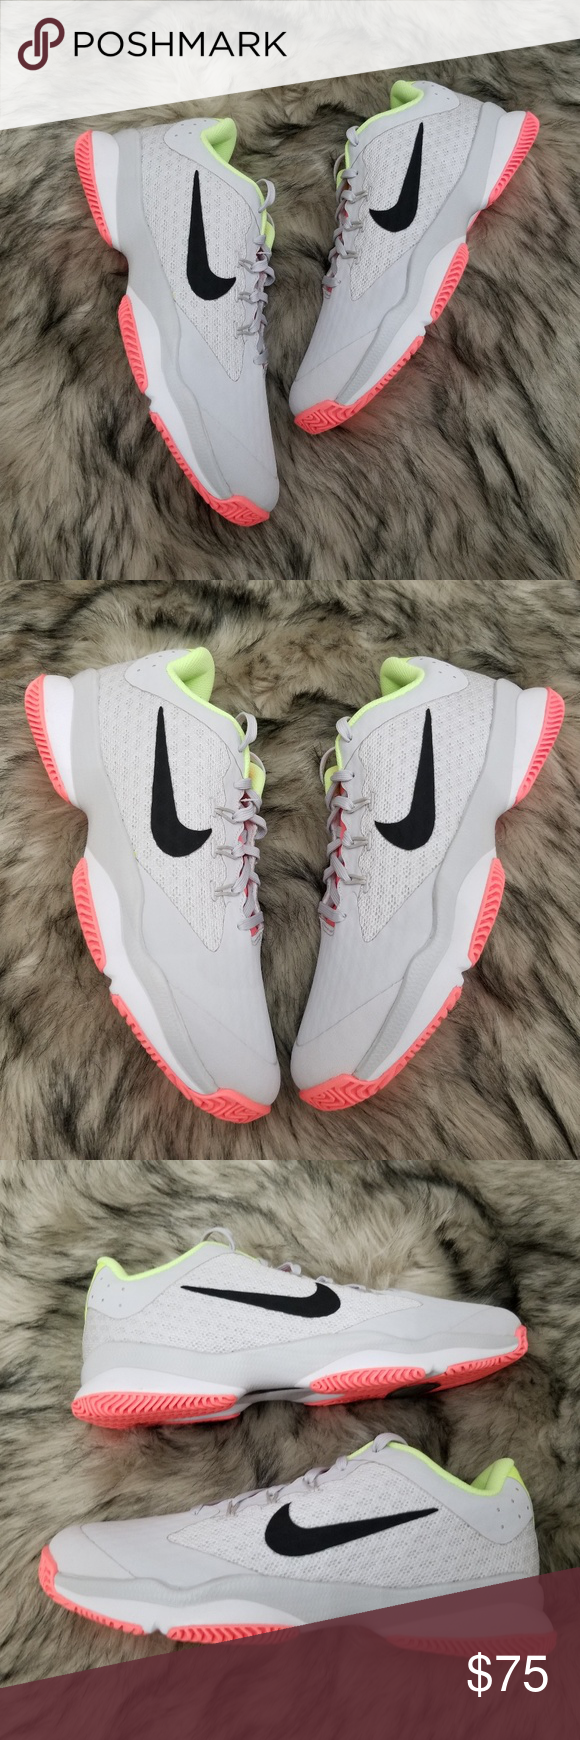 super popular 38fab bfa69 Nike NikeCourt Air Zoom Ultra Women s Tennis Shoes Firm Price New Without  Box 100% Authentic